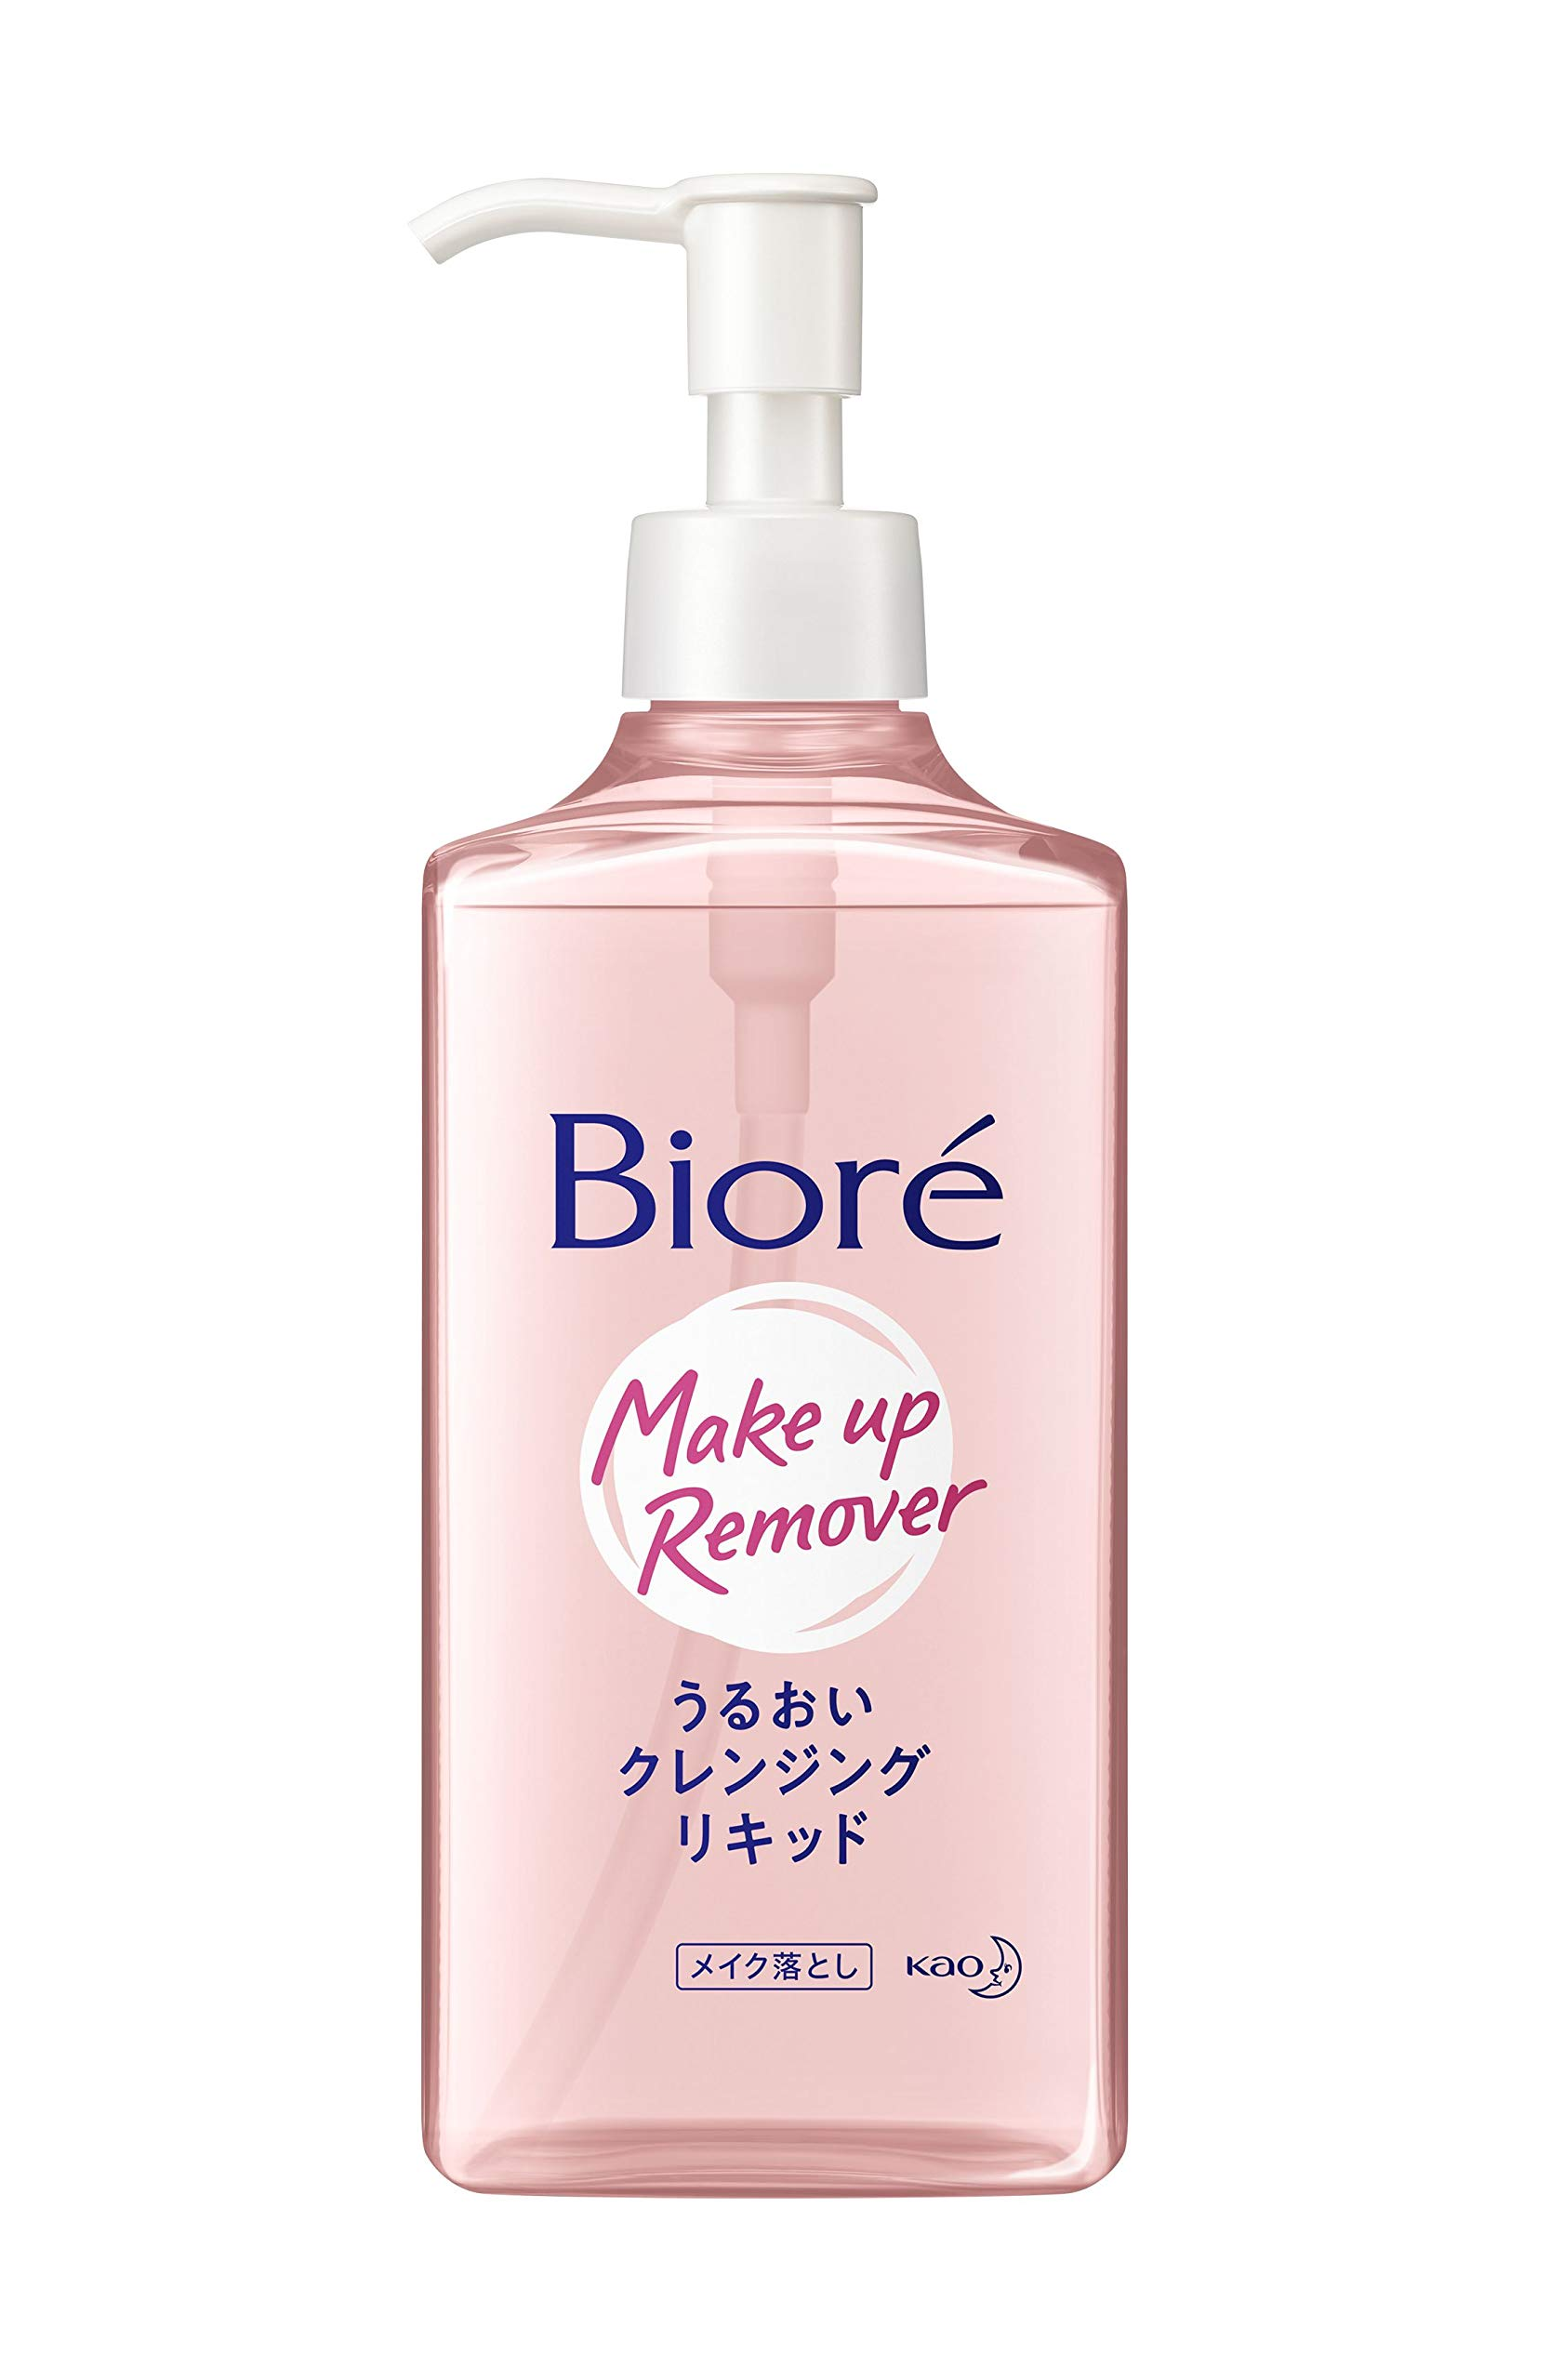 Kao Biore | Make-up Remover | Mild Cleansing Liquid 230ml